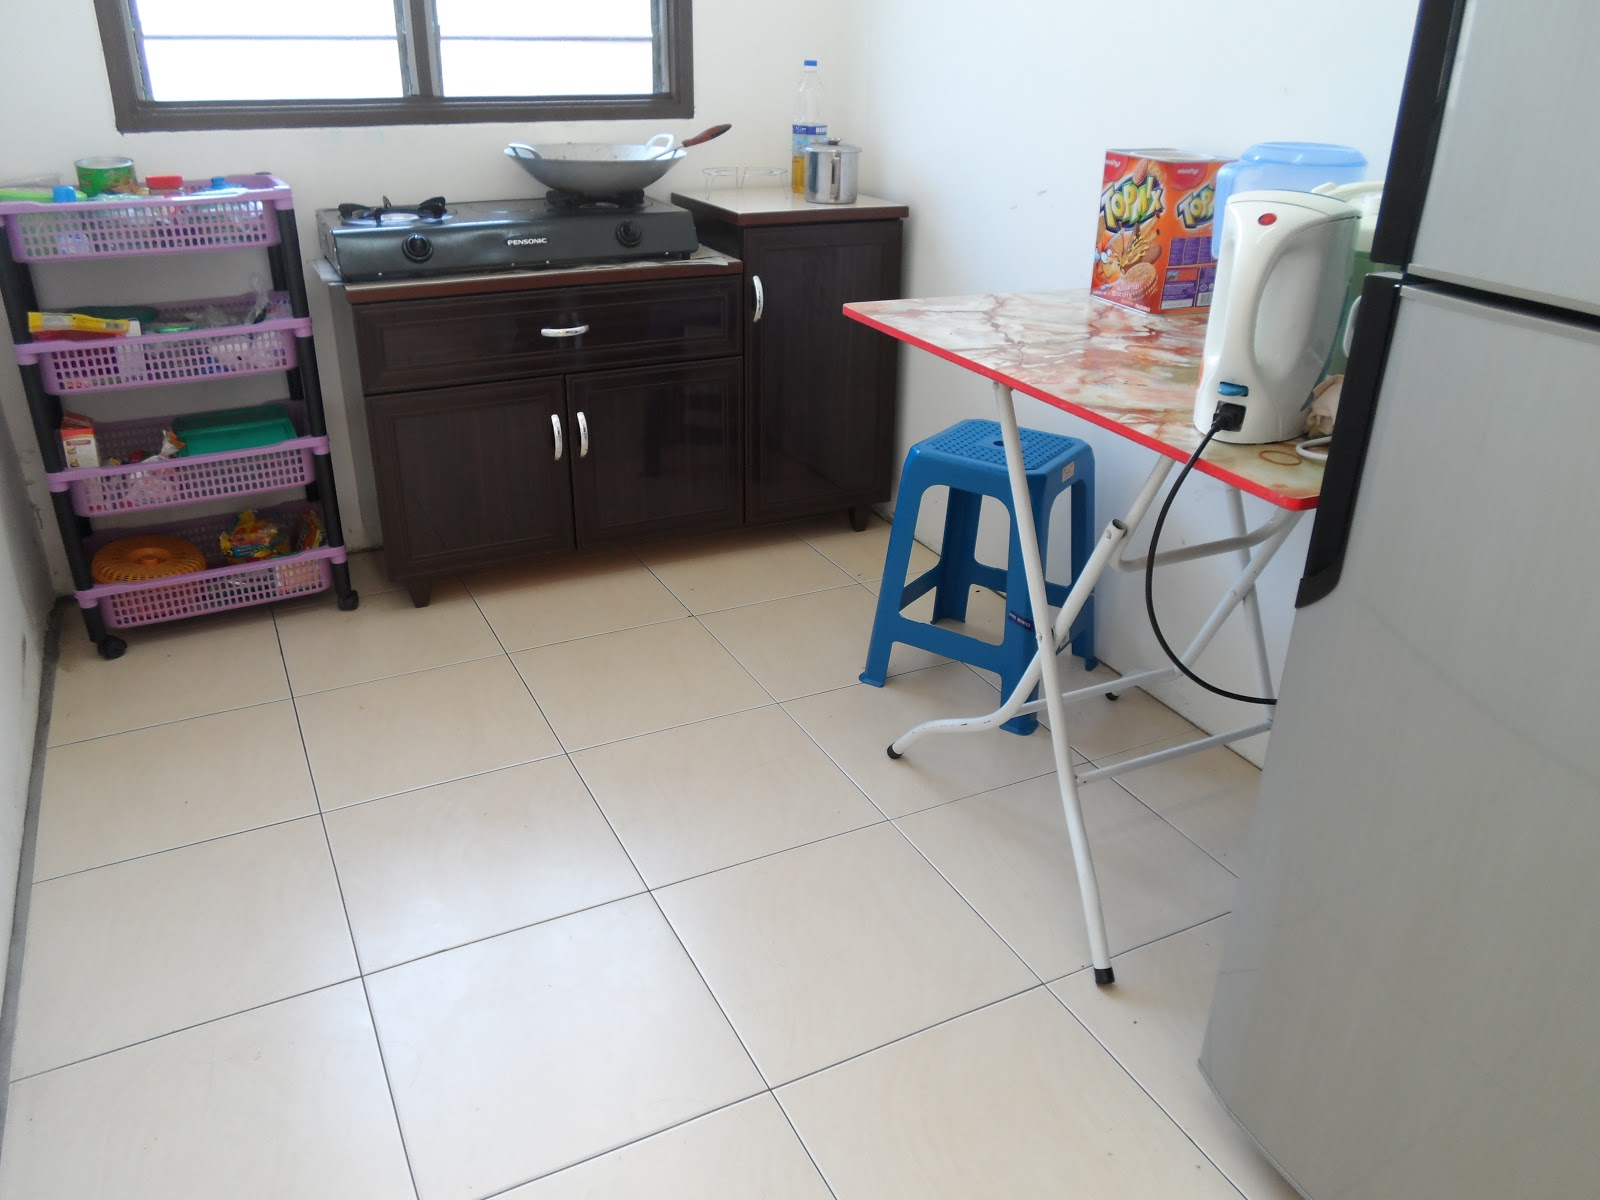 My Simple Small Kitchen Alhamdulillah Dah Complete Pun